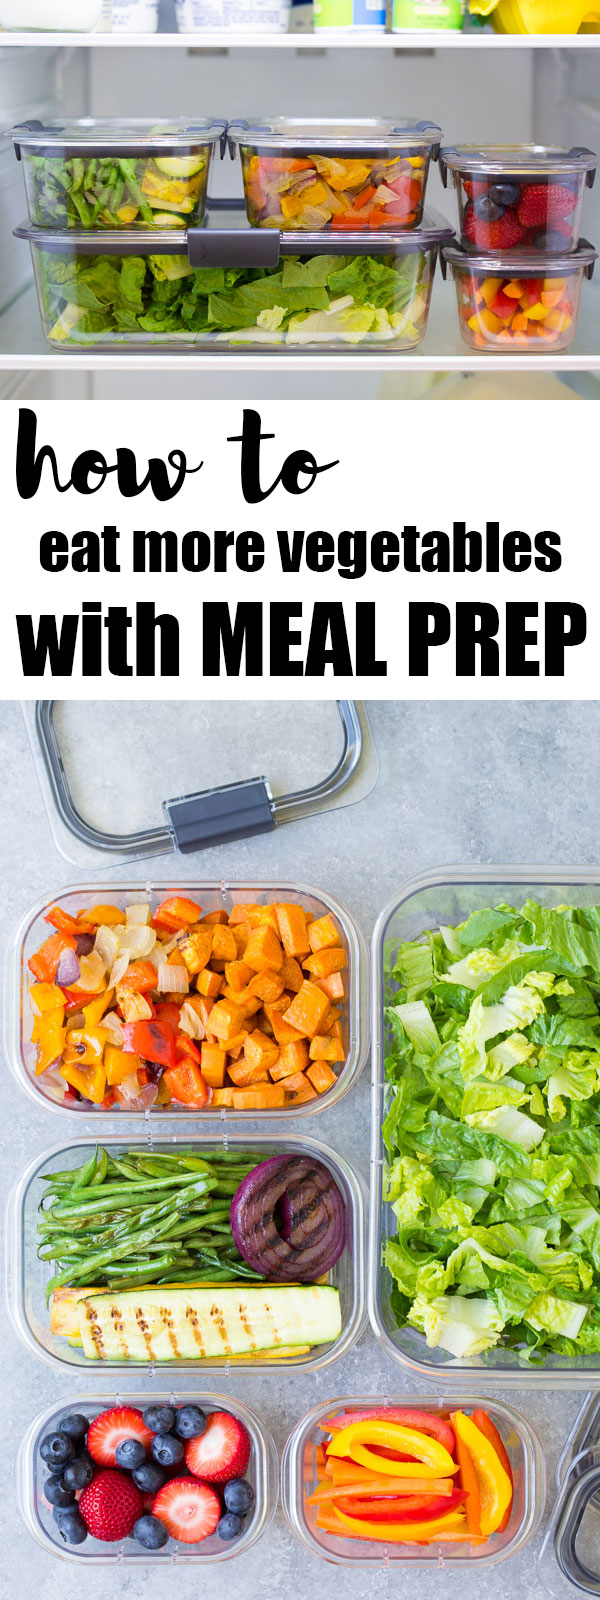 decorative image for pinterest showing all meal prepped vegetables and fruit in the refrigerator and containers